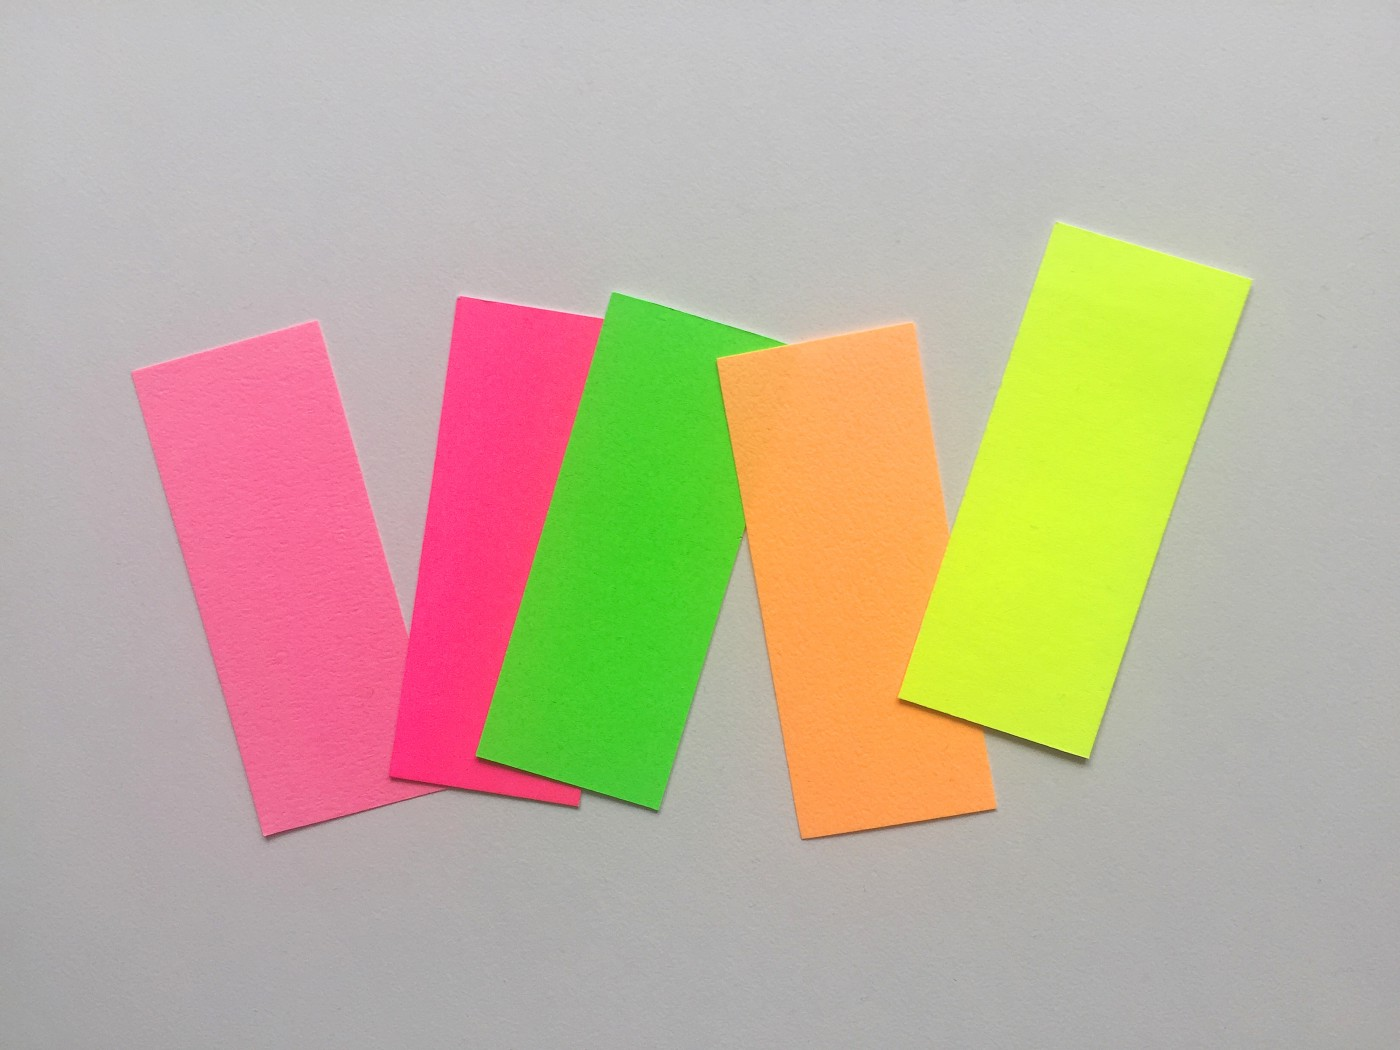 Main image displaying various fluorescent swatches: two pinks in different intensities, a green, an orange and a yellow.